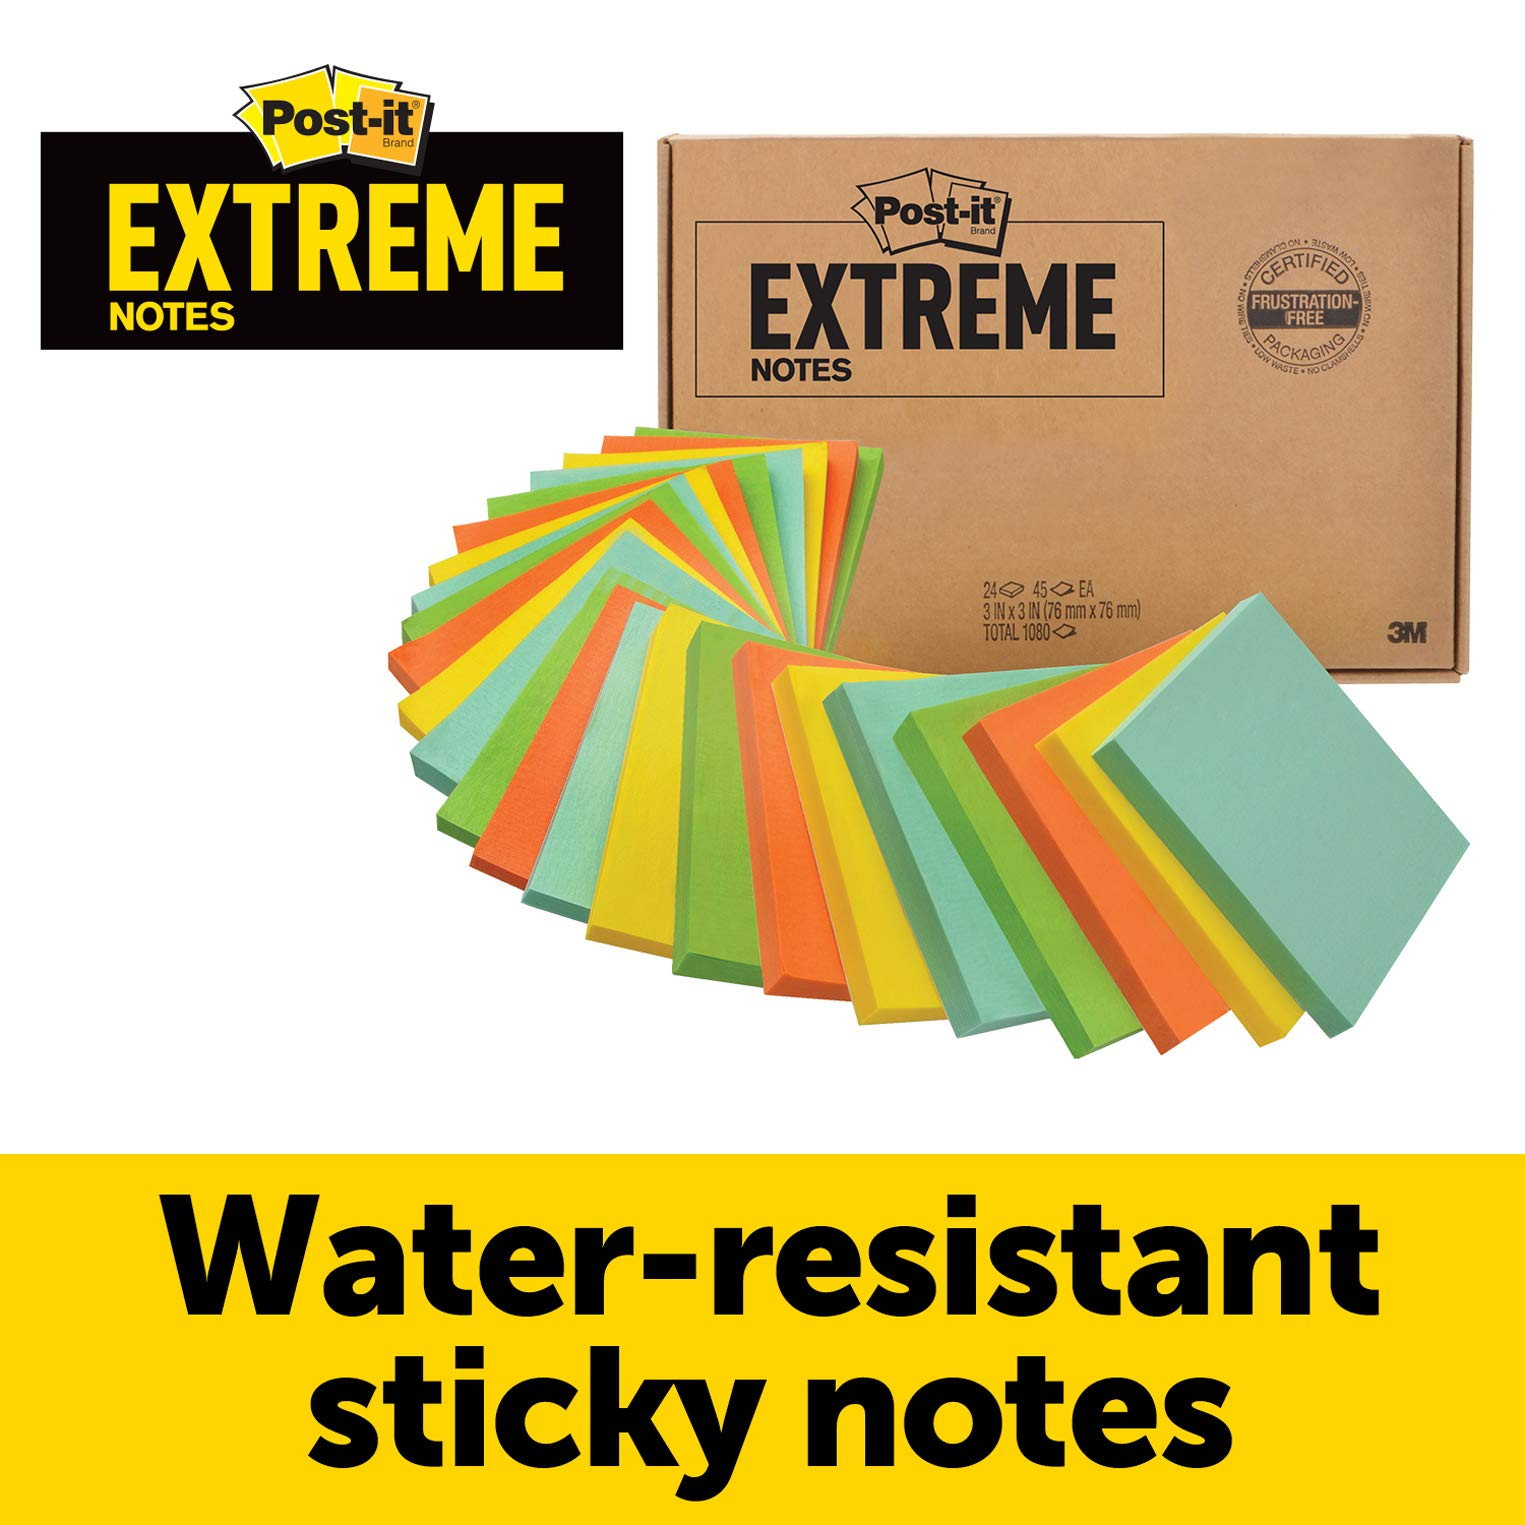 Post-it Extreme Notes, Works outdoors, Works in 0 - 120 degrees Fahrenheit, Sticks where other notes can't, Green, Orange, Mint, Yellow, 3 in x 3 in, 24 Pads/Pack, 45 Sheets/Pad by Post-it